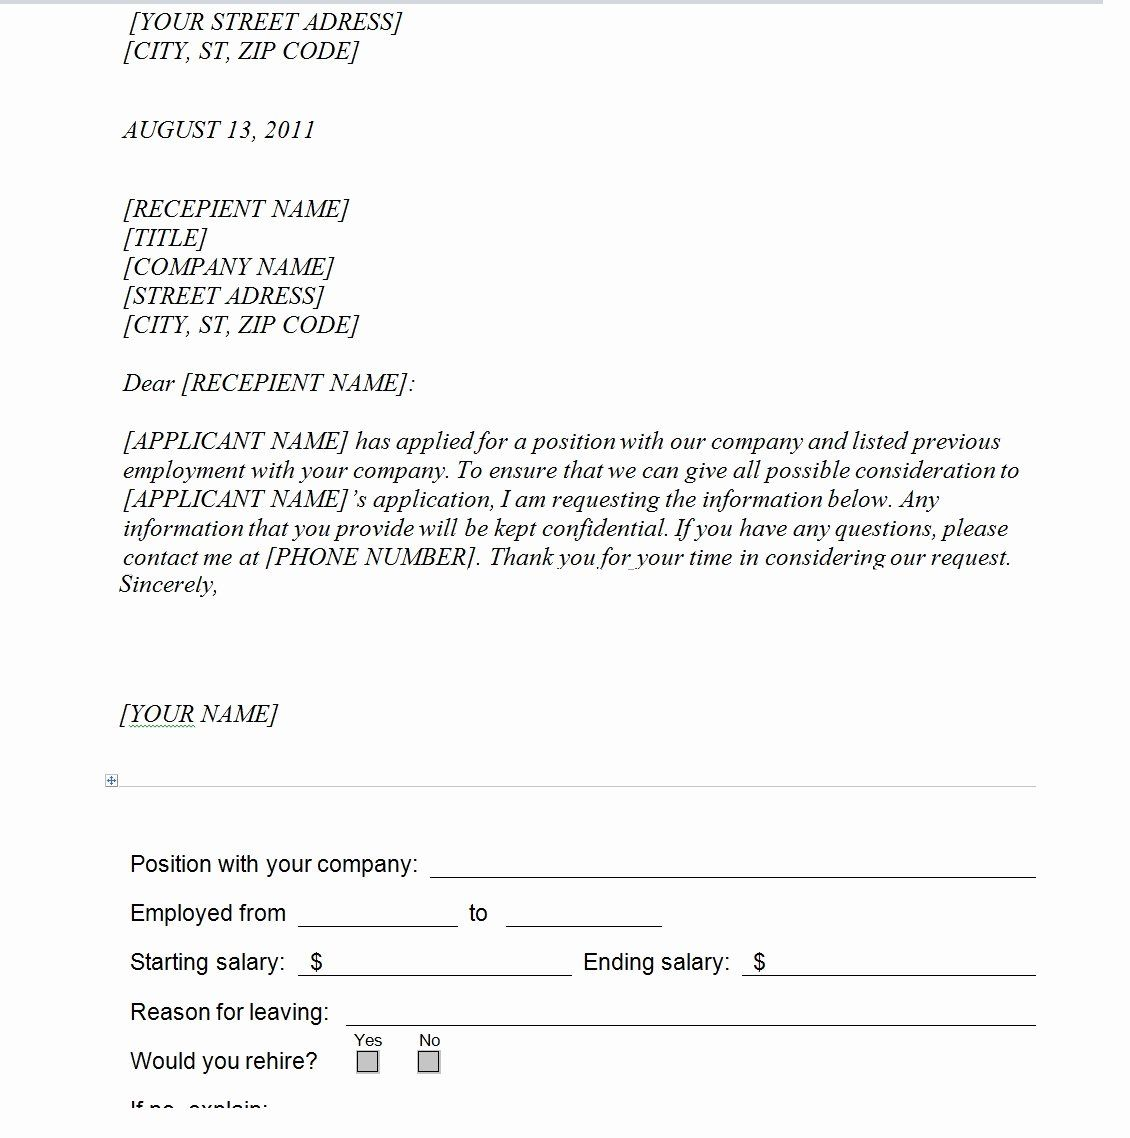 Fresh Employment Verification form Template in 2020